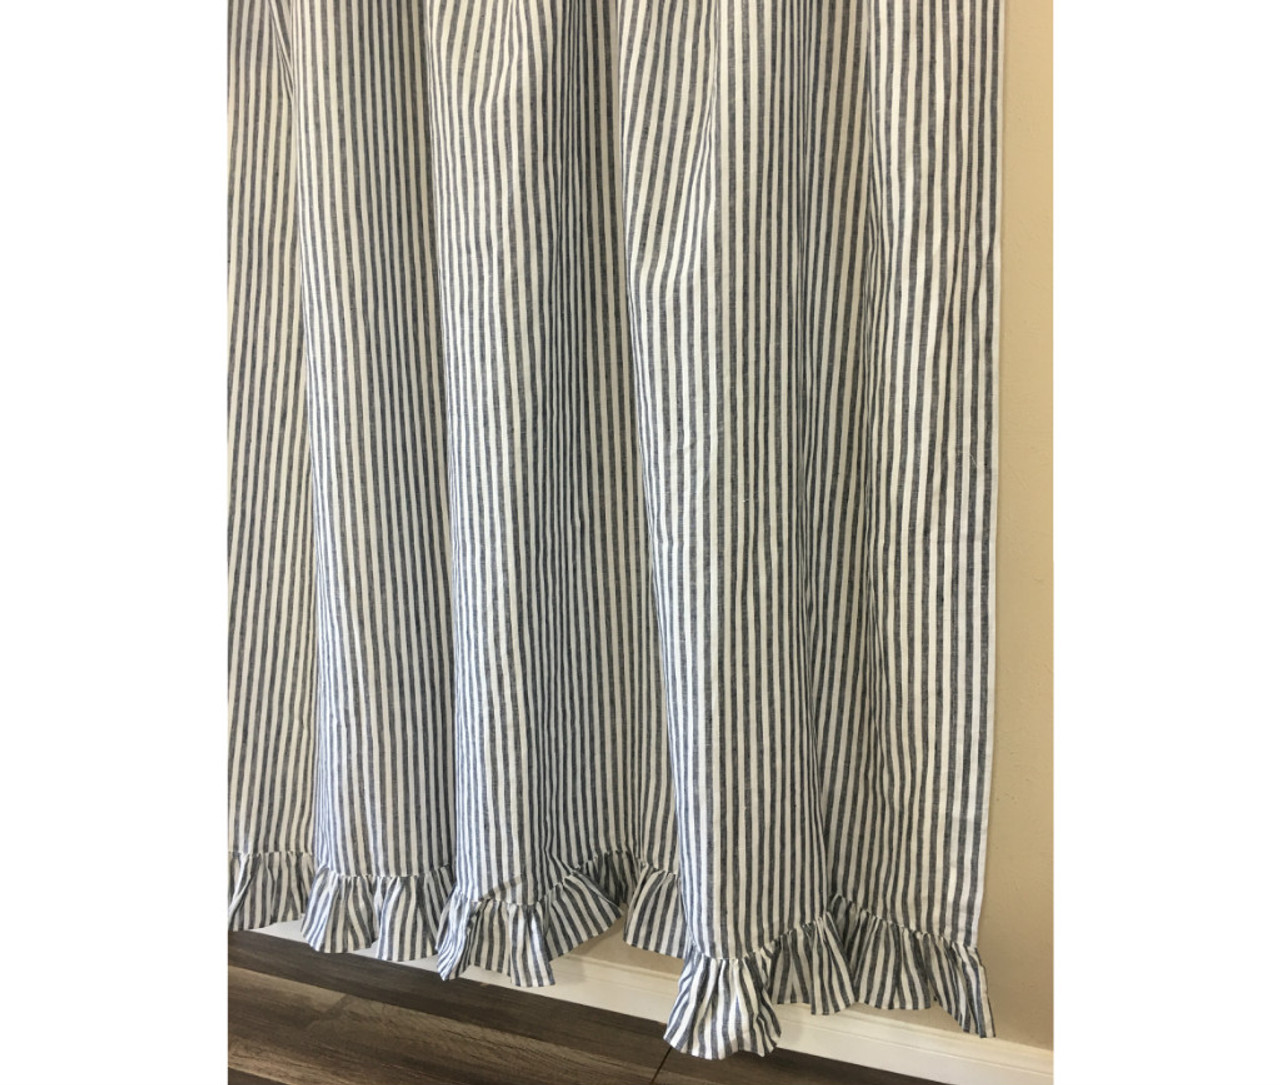 Dark Navy And White Striped Shower Curtain With Ruffle Hem Mildew Free 72x72 72x85 72x94 Custom Curtains Bathroom Curtain Bathroom Decor